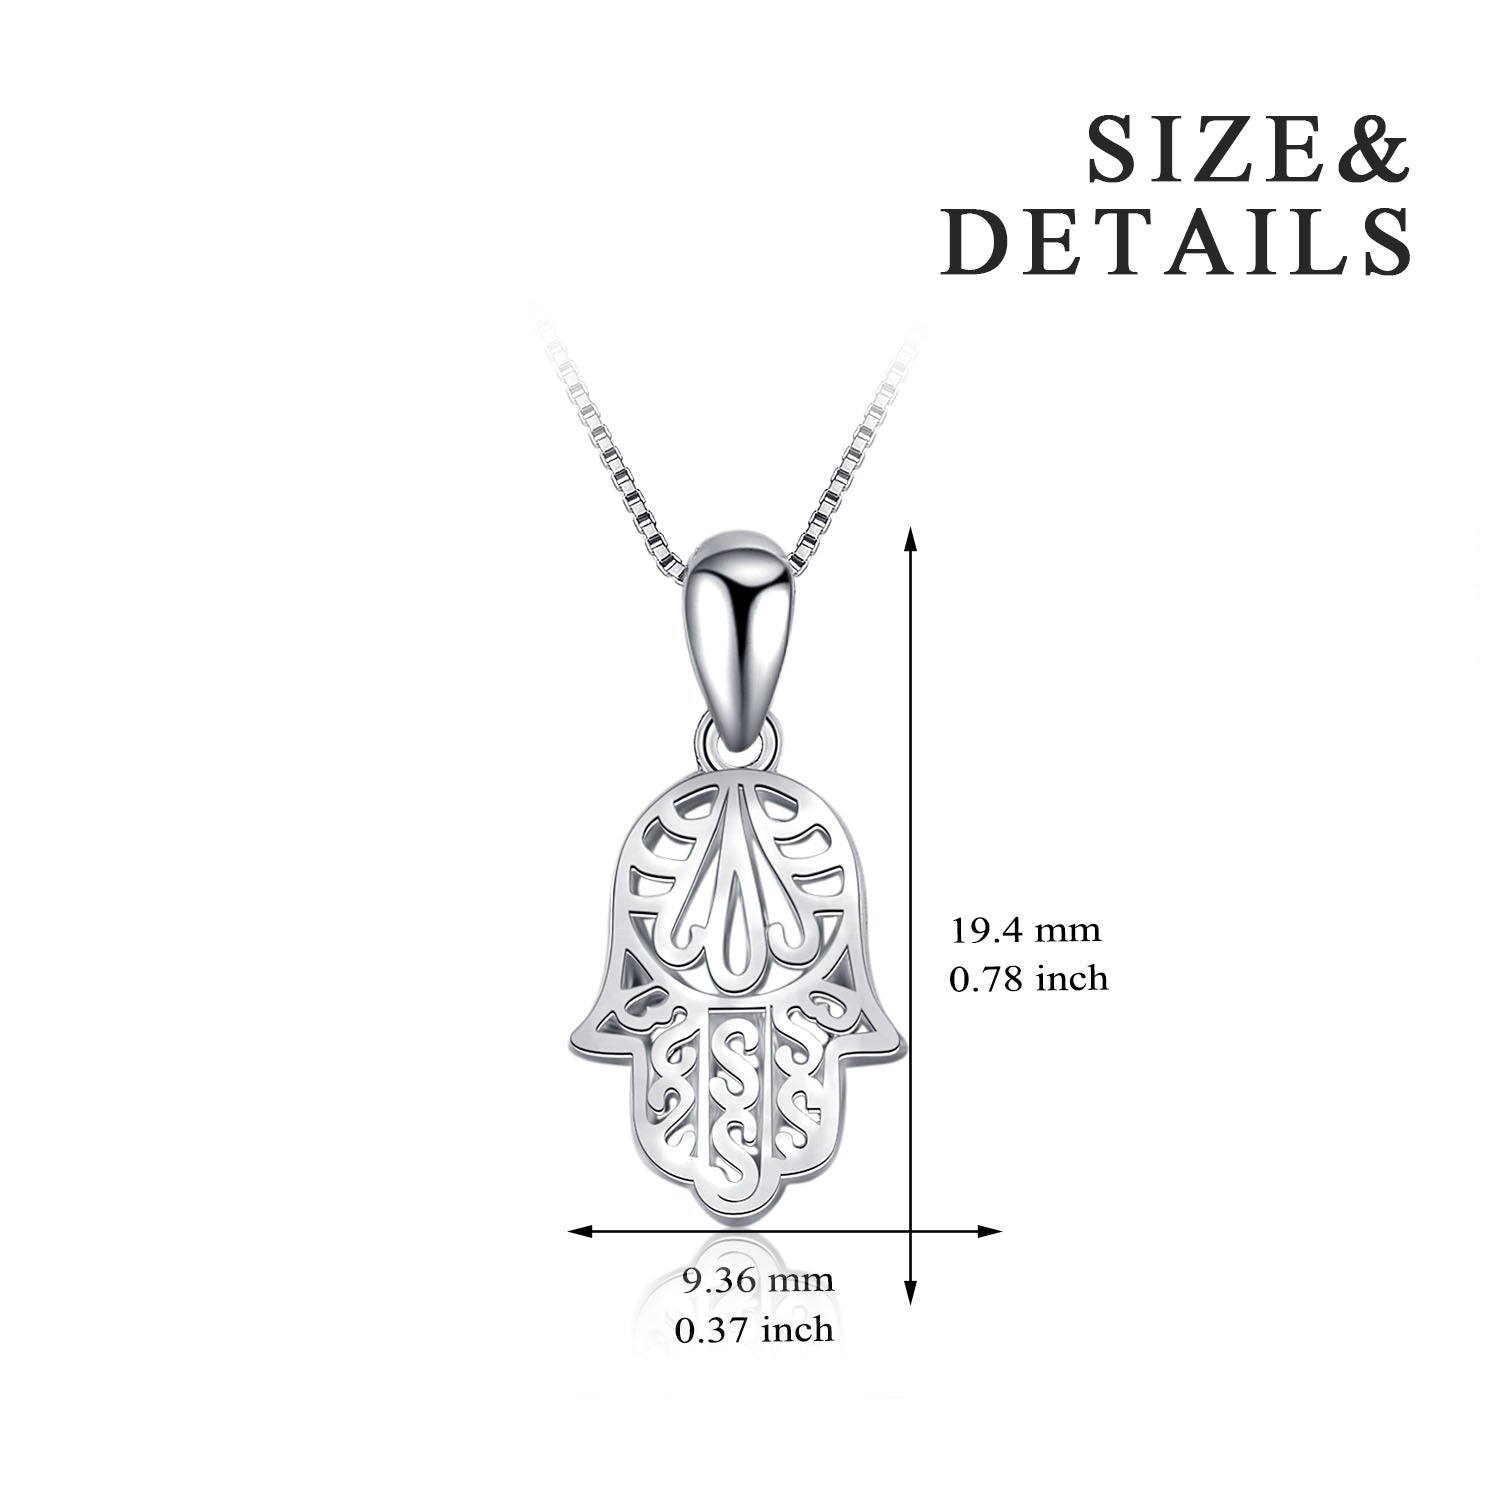 Hamza's Hand Necklace Pendant 925 Sterling Silver Men Jewelry Design